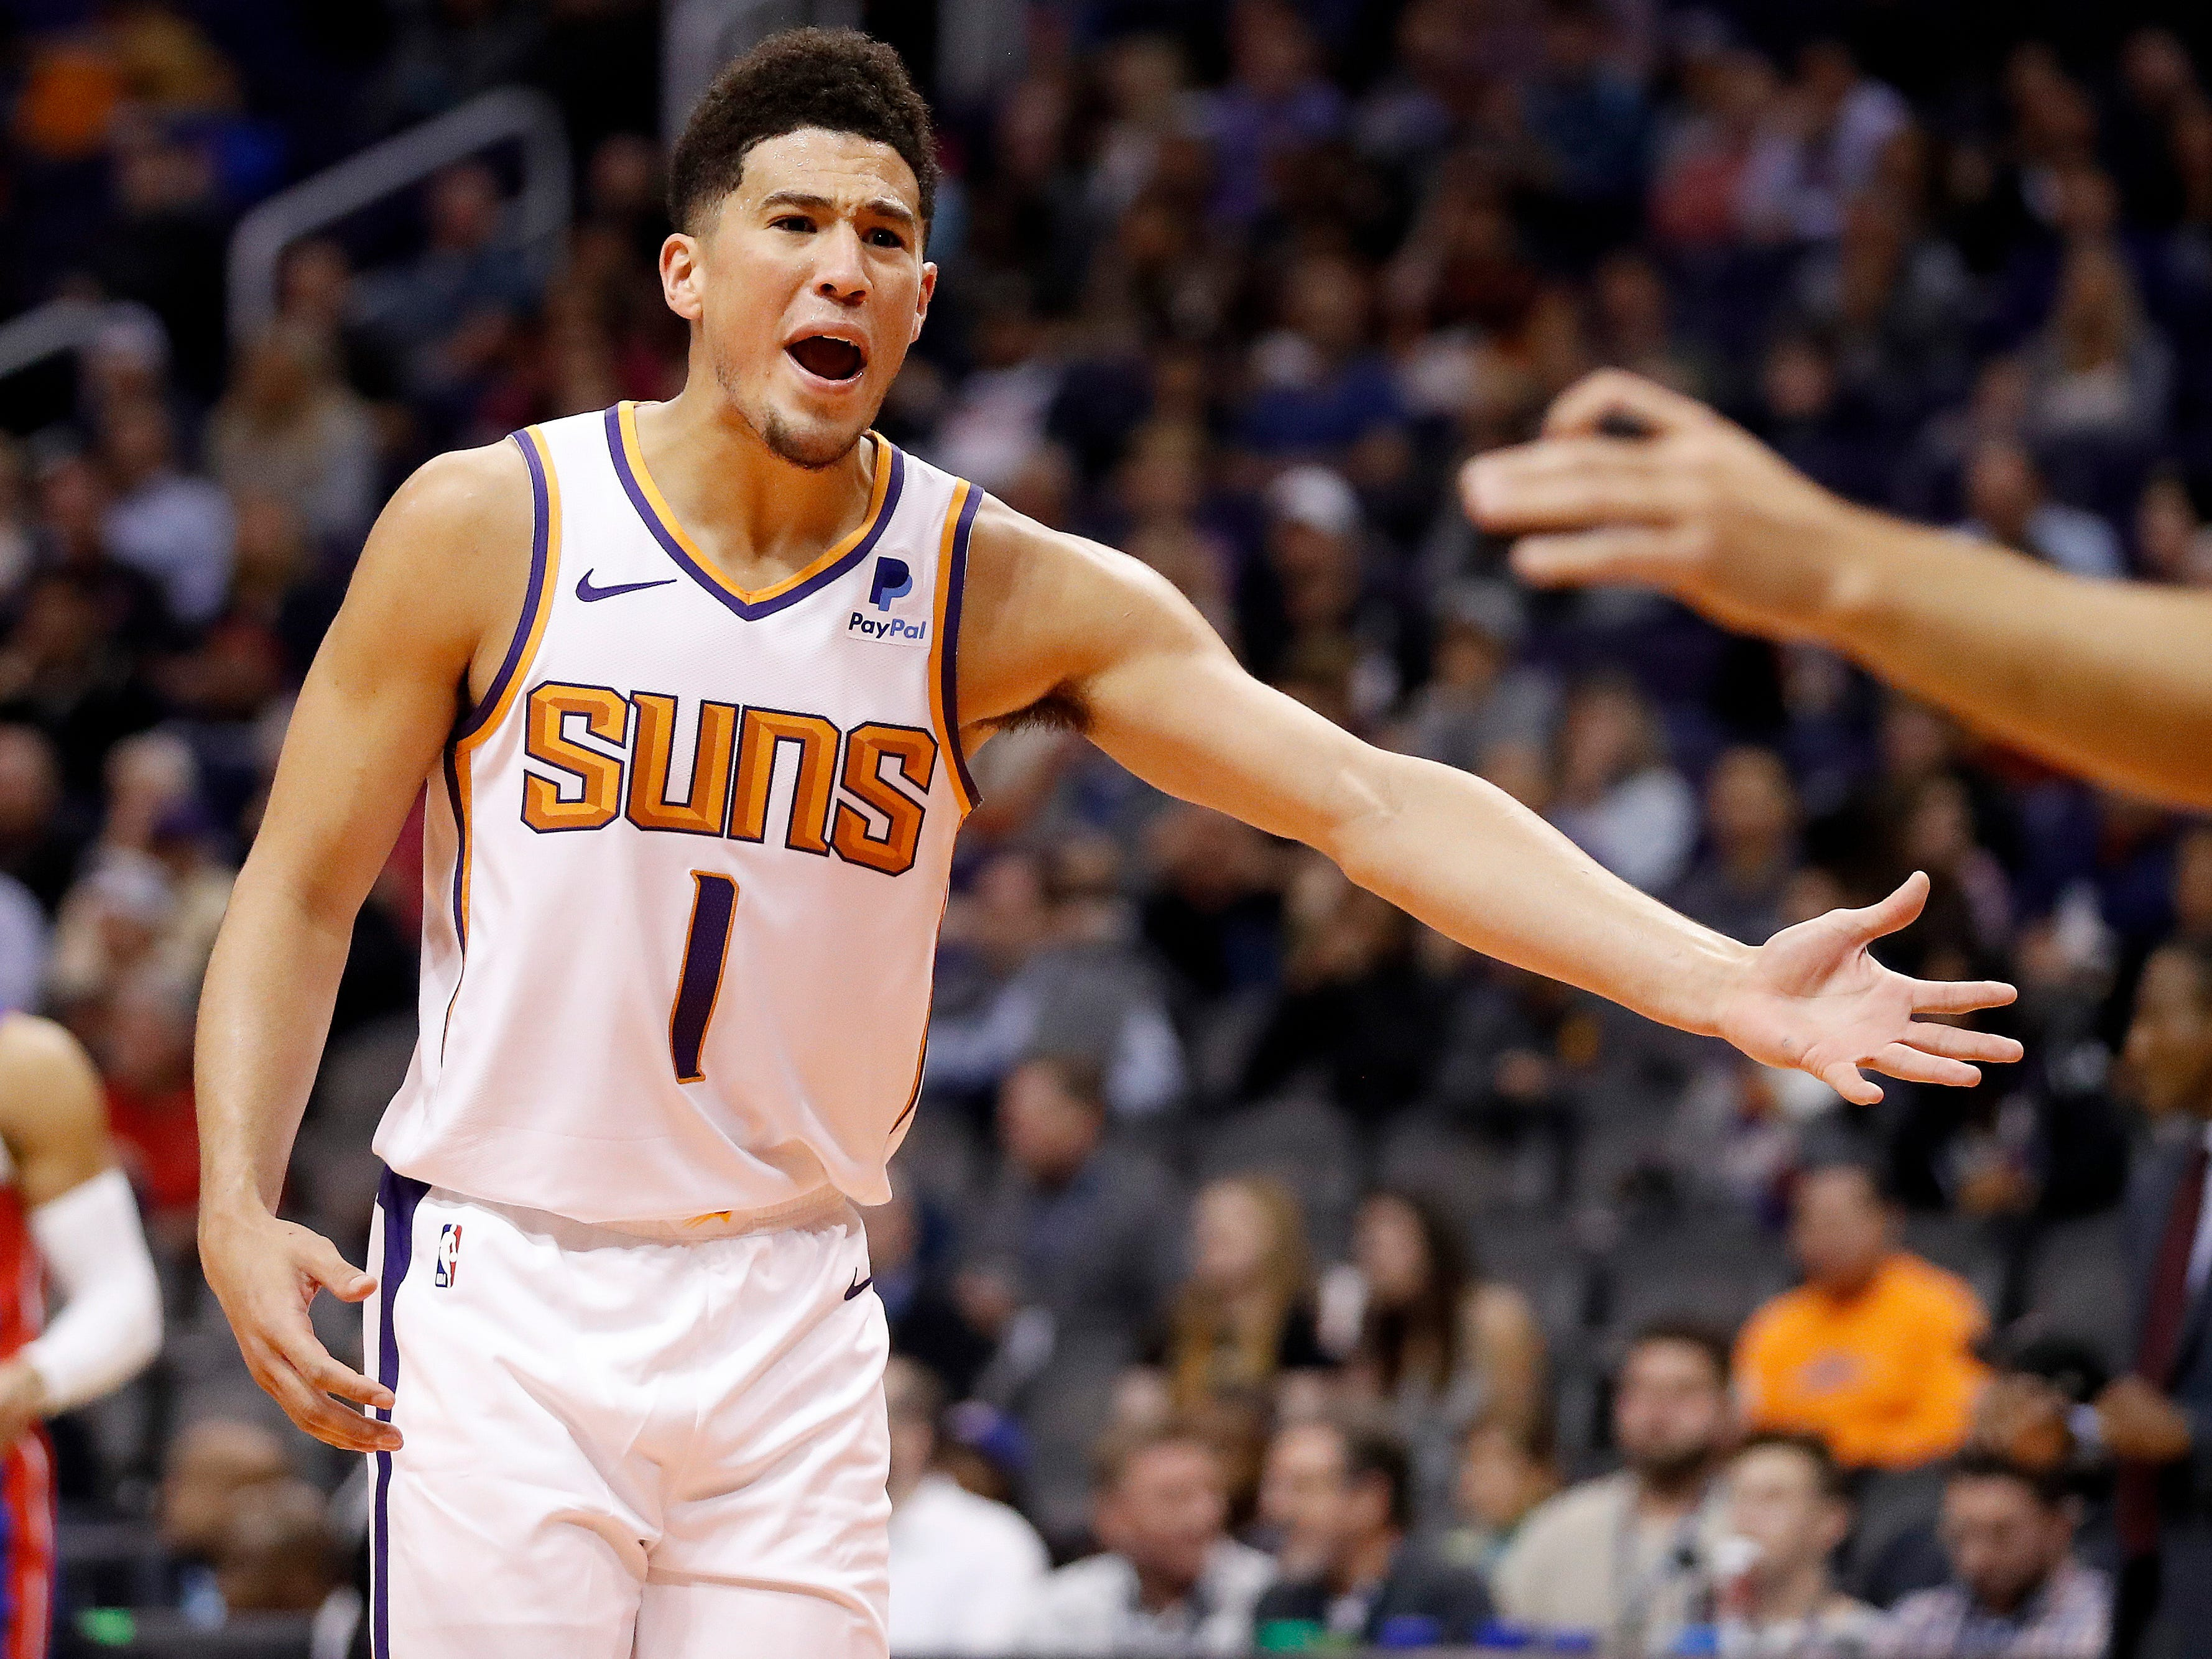 Phoenix Suns guard Devin Booker (1) argues with an official after being called for a technical foul during the second half of the team's NBA basketball game against the Detroit Pistons, Thursday, March 21, 2019, in Phoenix.